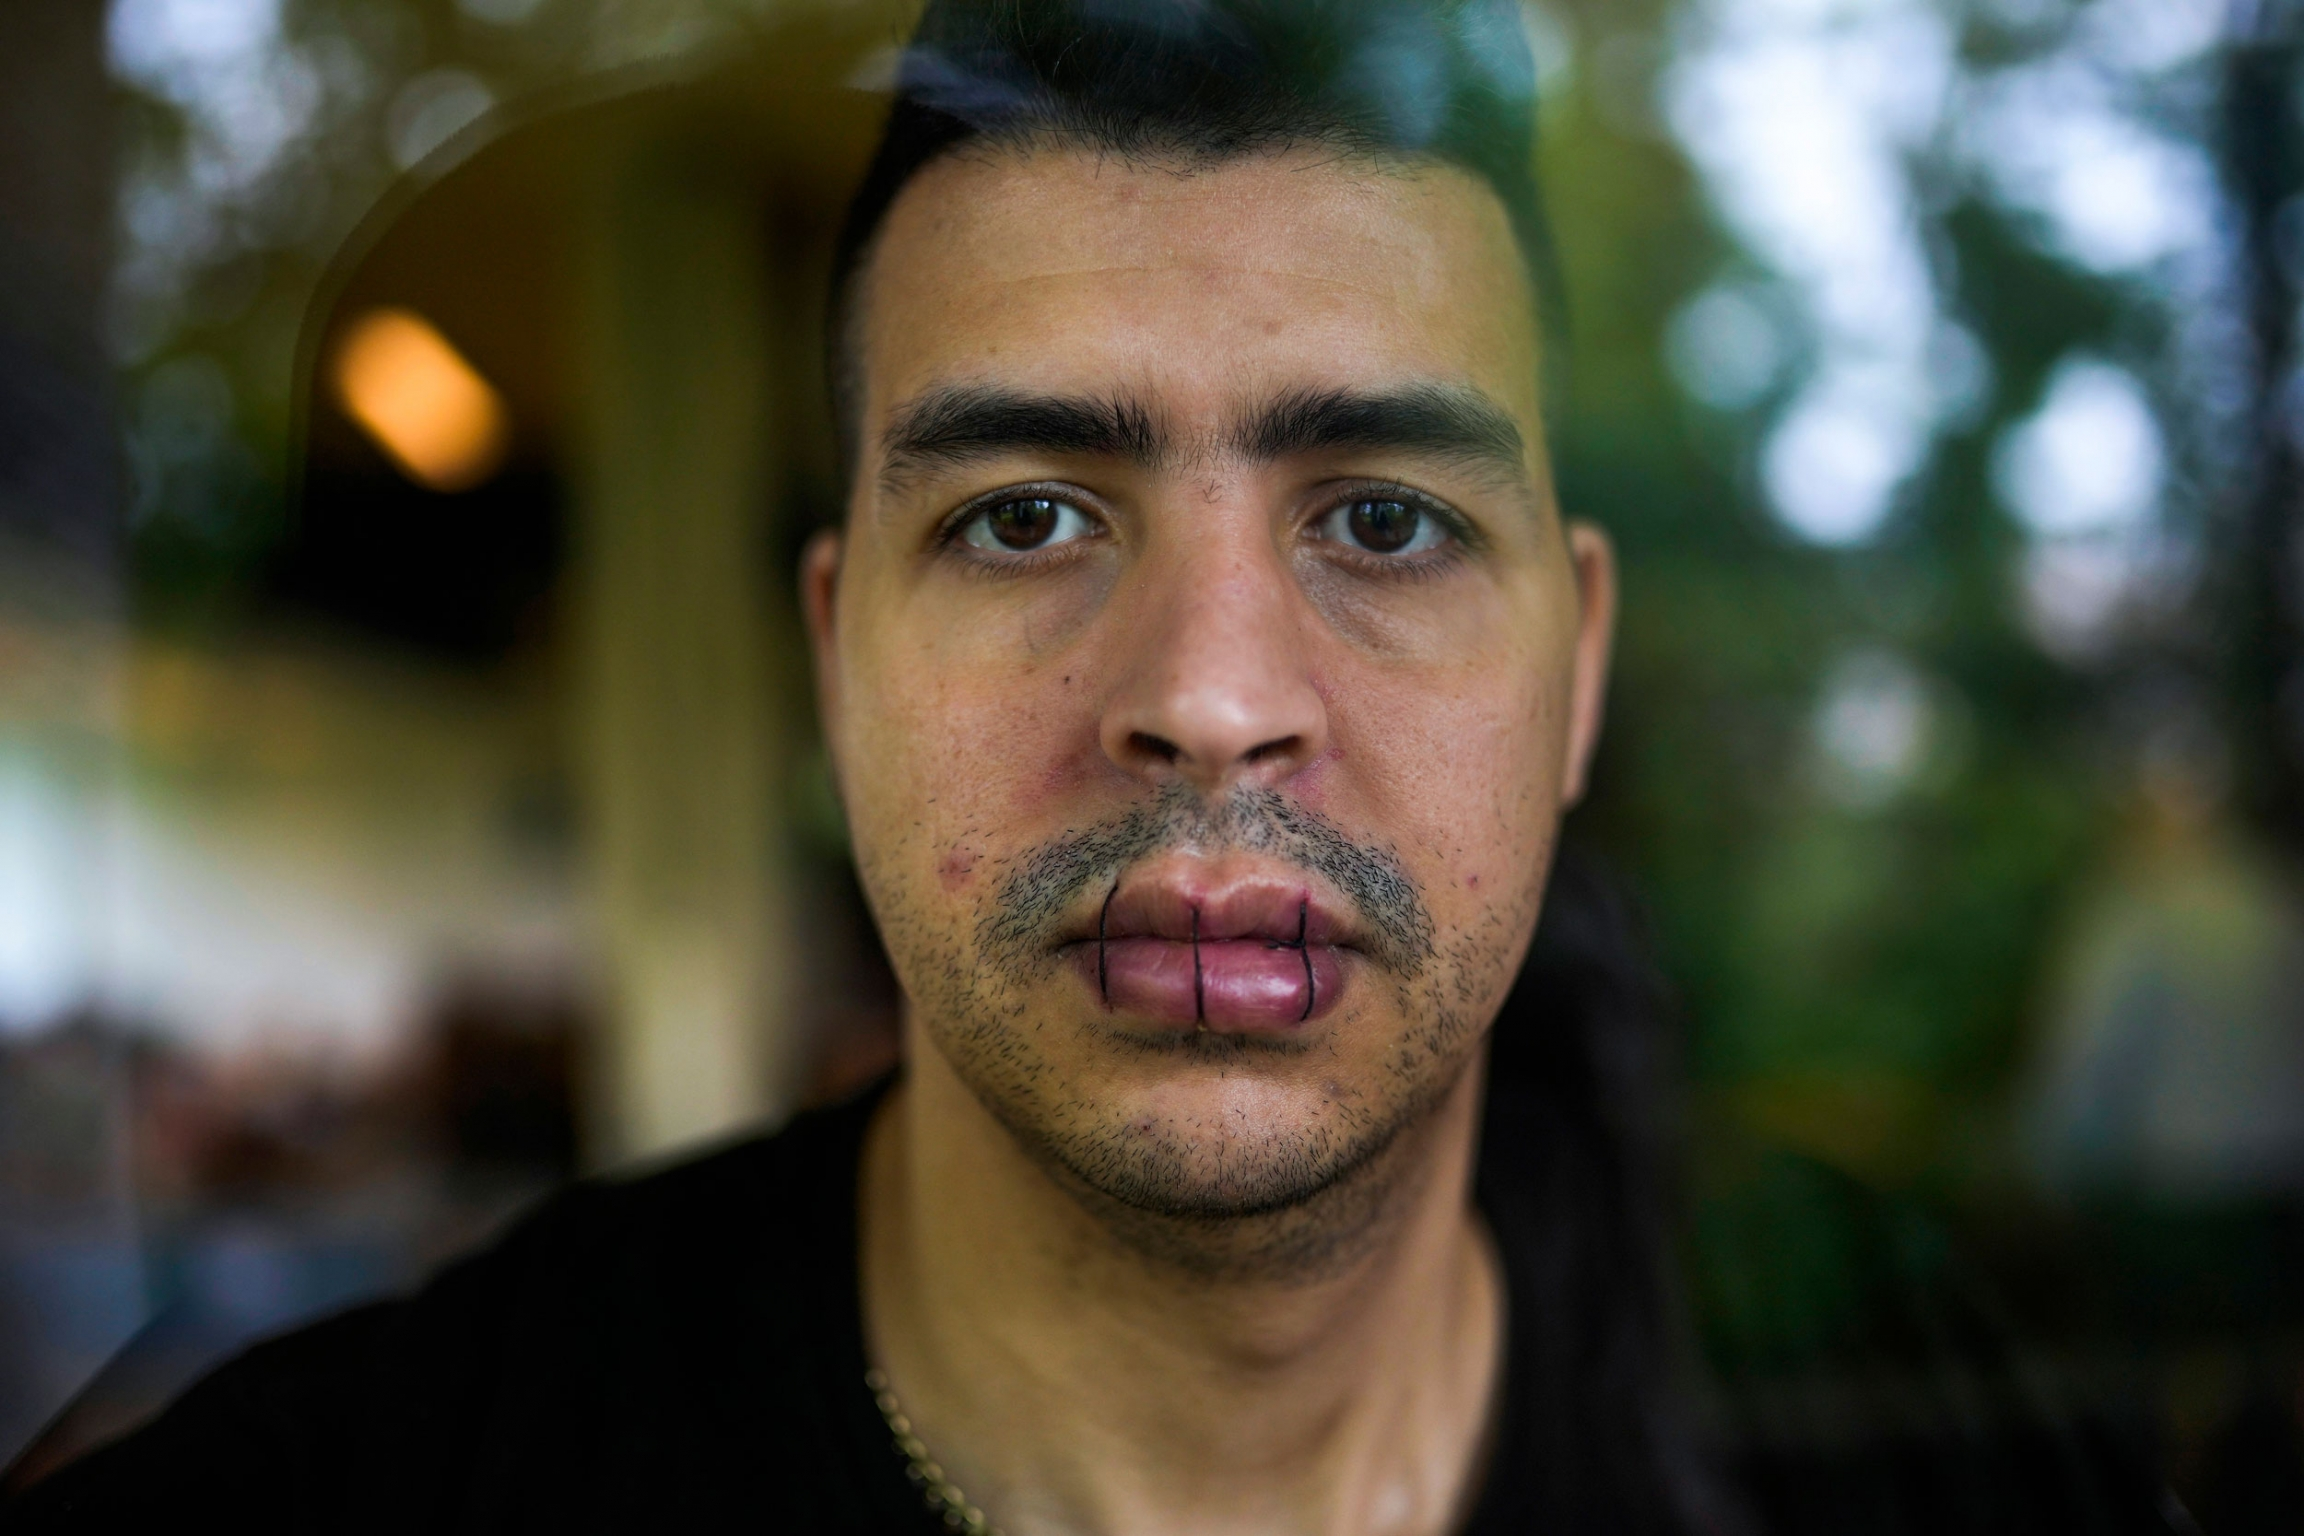 A close up portrait of a man who has sewn his lips together with three stitches.